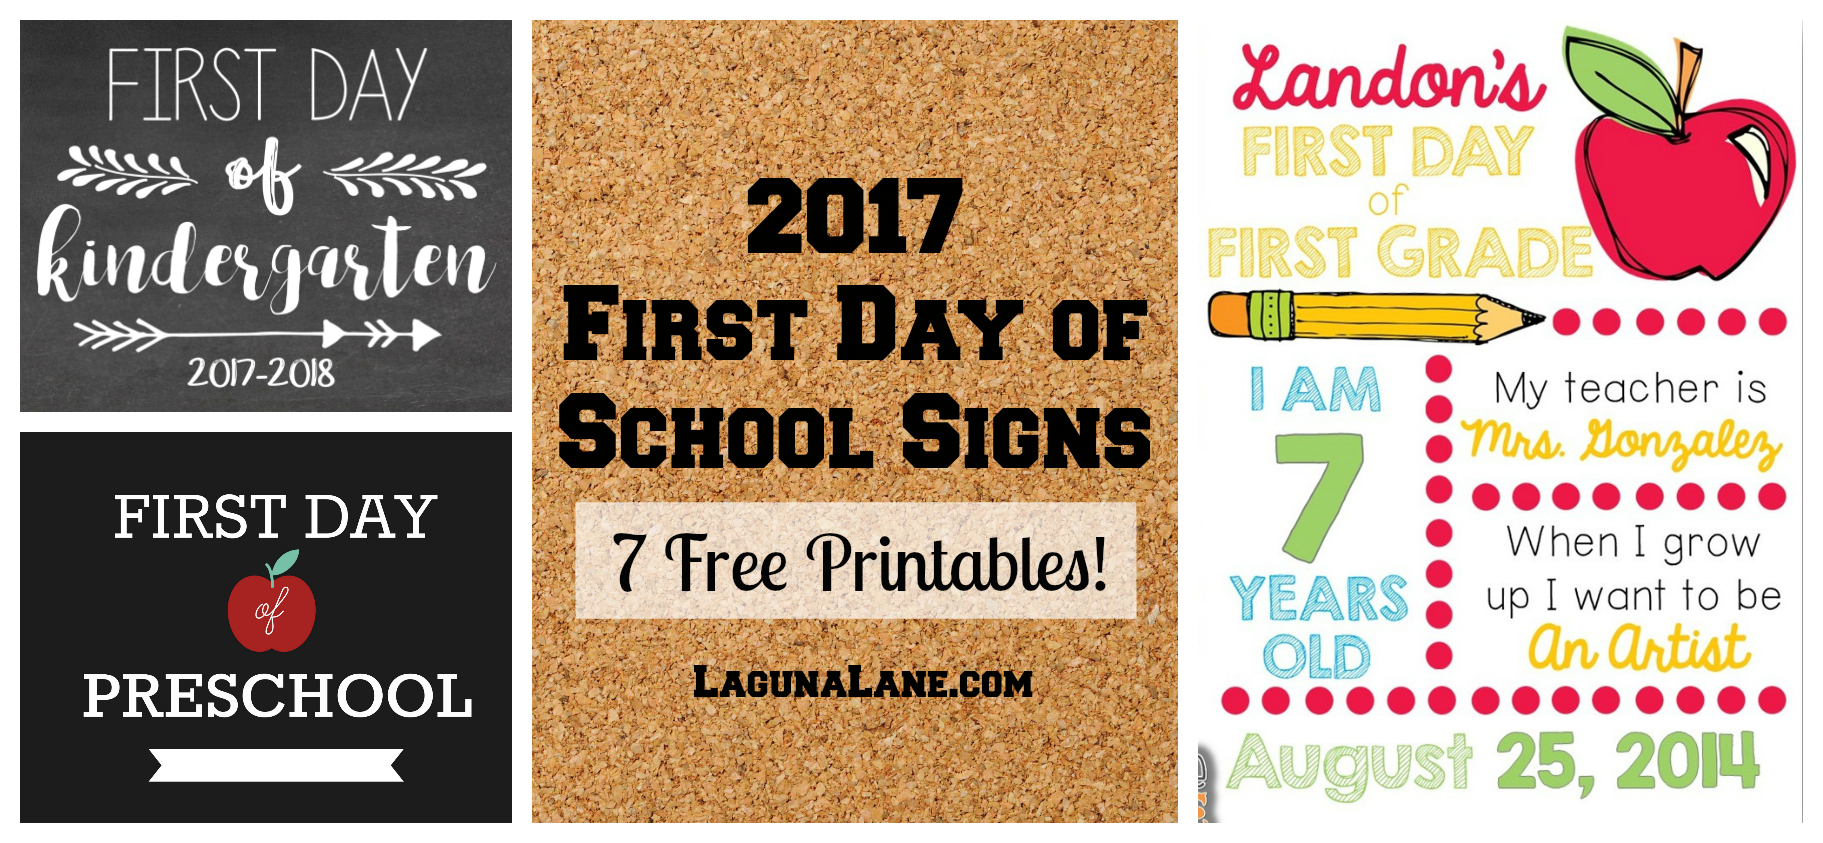 graphic regarding First Day of School Sign Printable identified as Initially Working day of University Signal - 7 Totally free Printables! - Laguna Lane